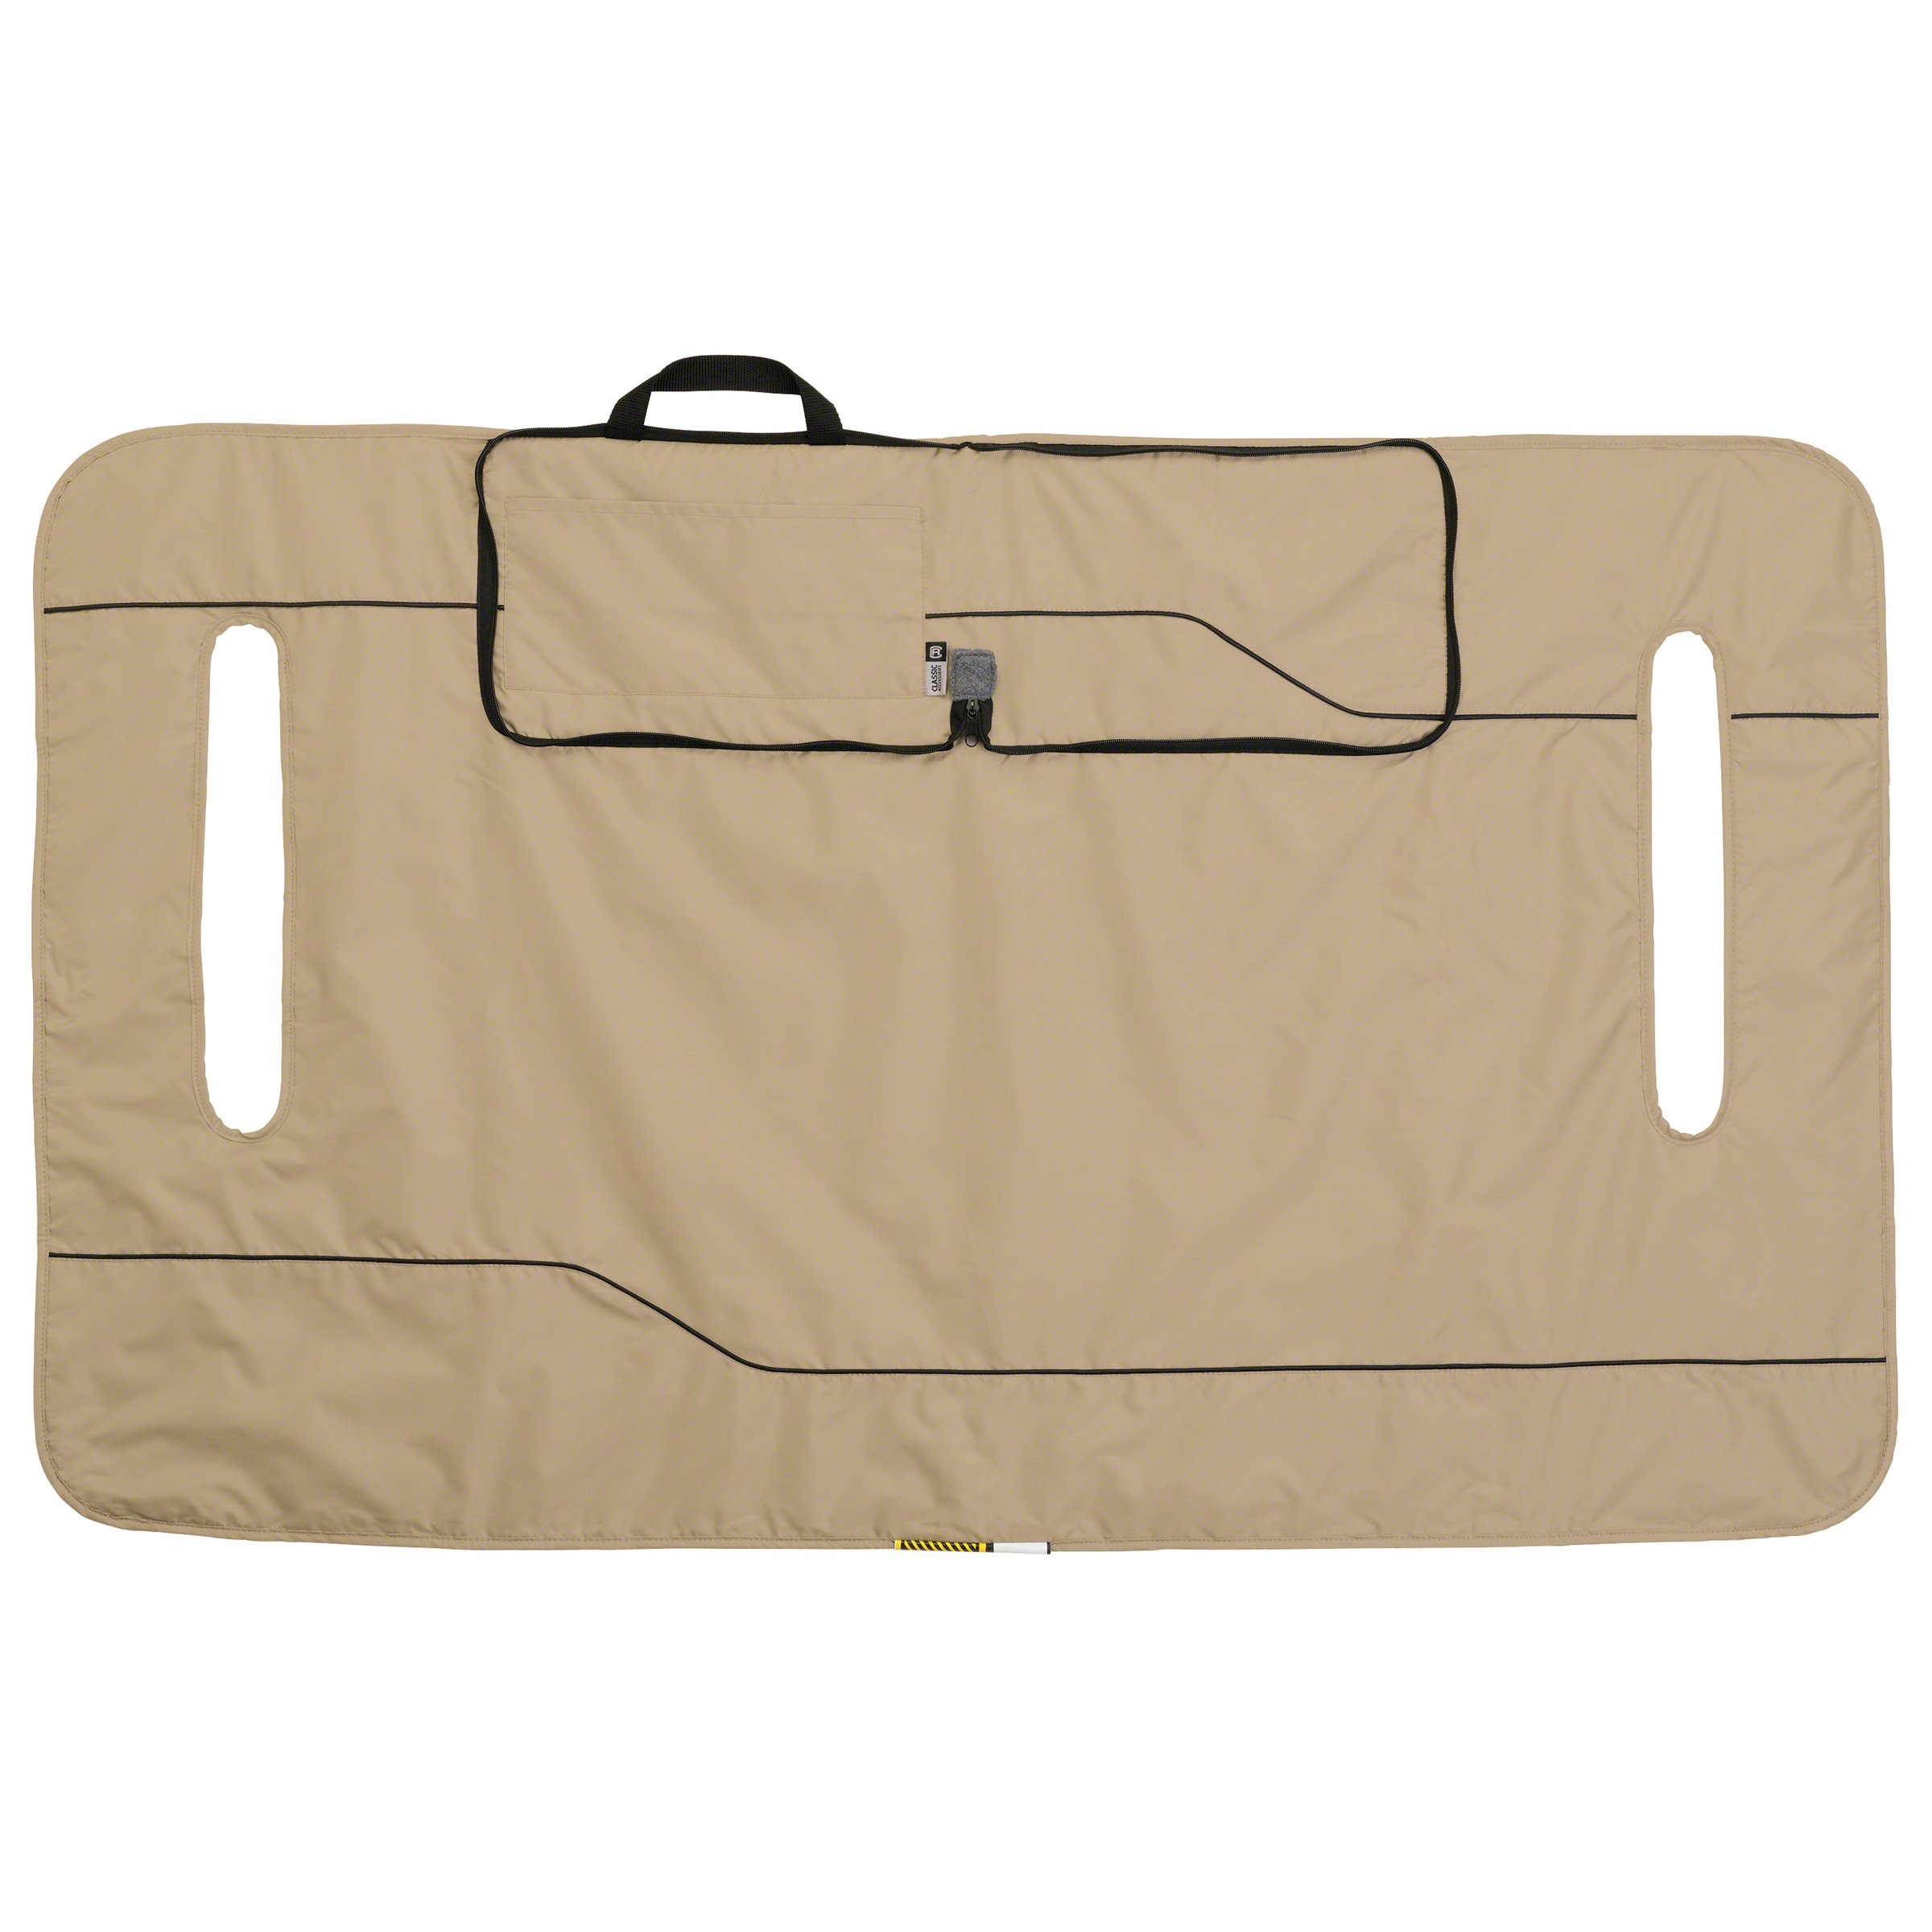 Classic Accessories Fairway Golf Cart Seat Blanket/Cover, Light Khaki